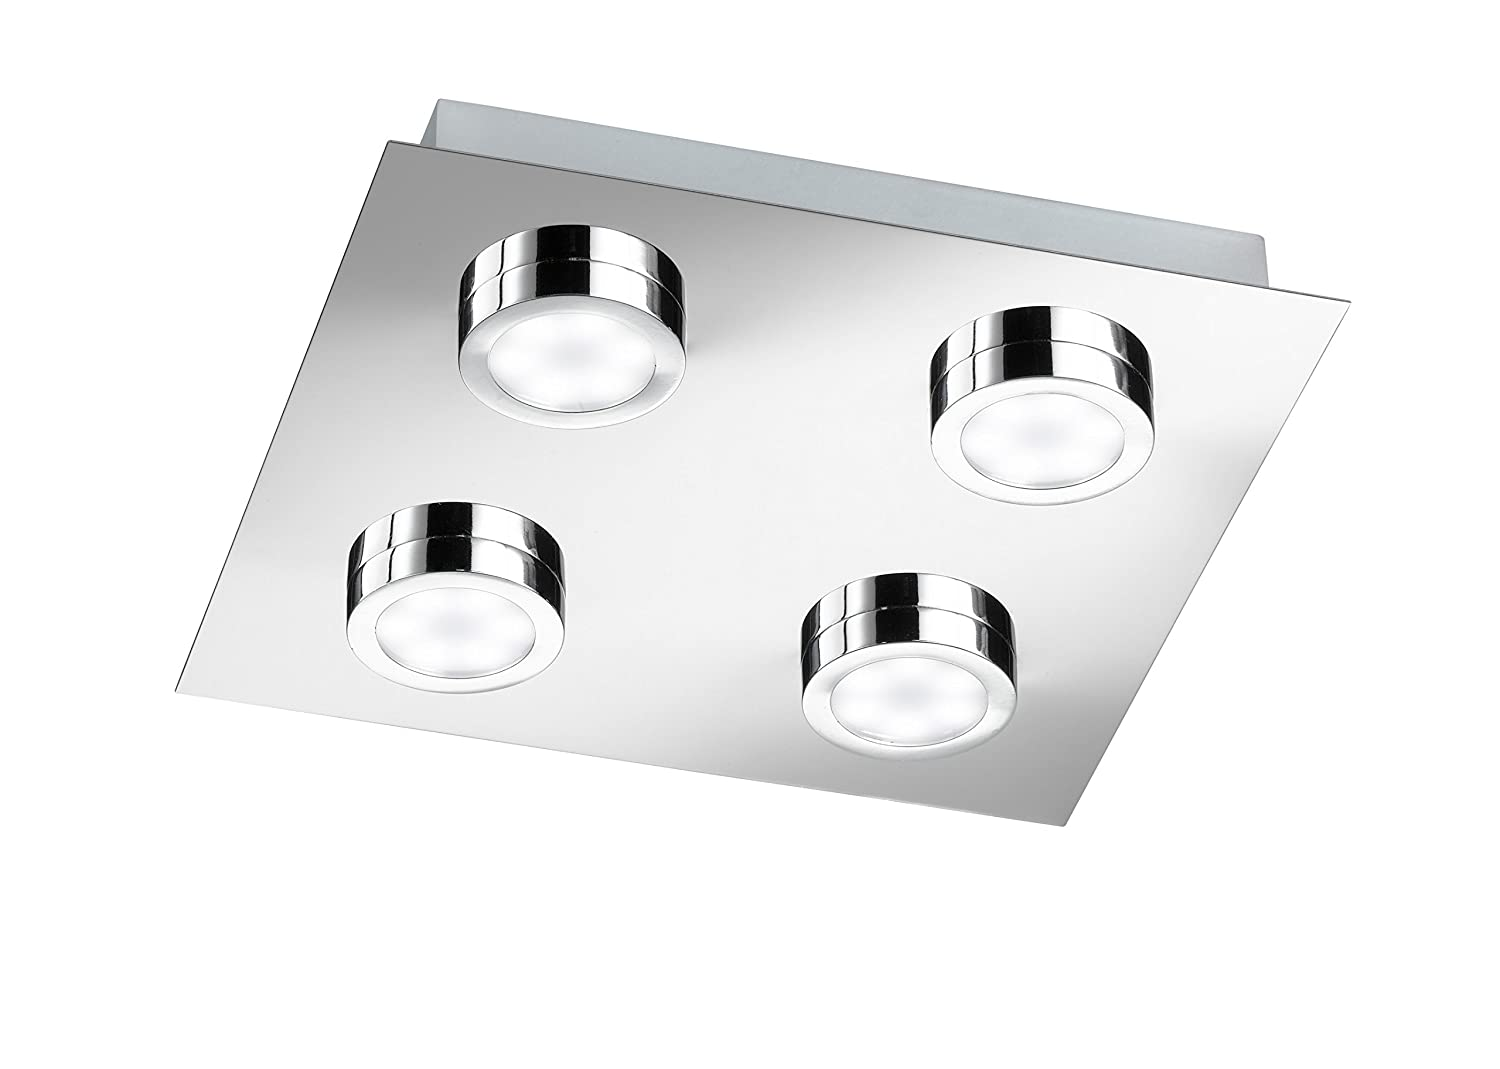 Wofi Ceiling Light SPA-Line, 4 Lights, Veneta Series, Energy Efficiency Class A+, Protection Class IP20, 3000 Kelvin, 210 Lumens, 4x LEDs / 3 W, 25 x 4 x 25 cm, Chrome 9871.04.01.0044 [Energy Class A+]